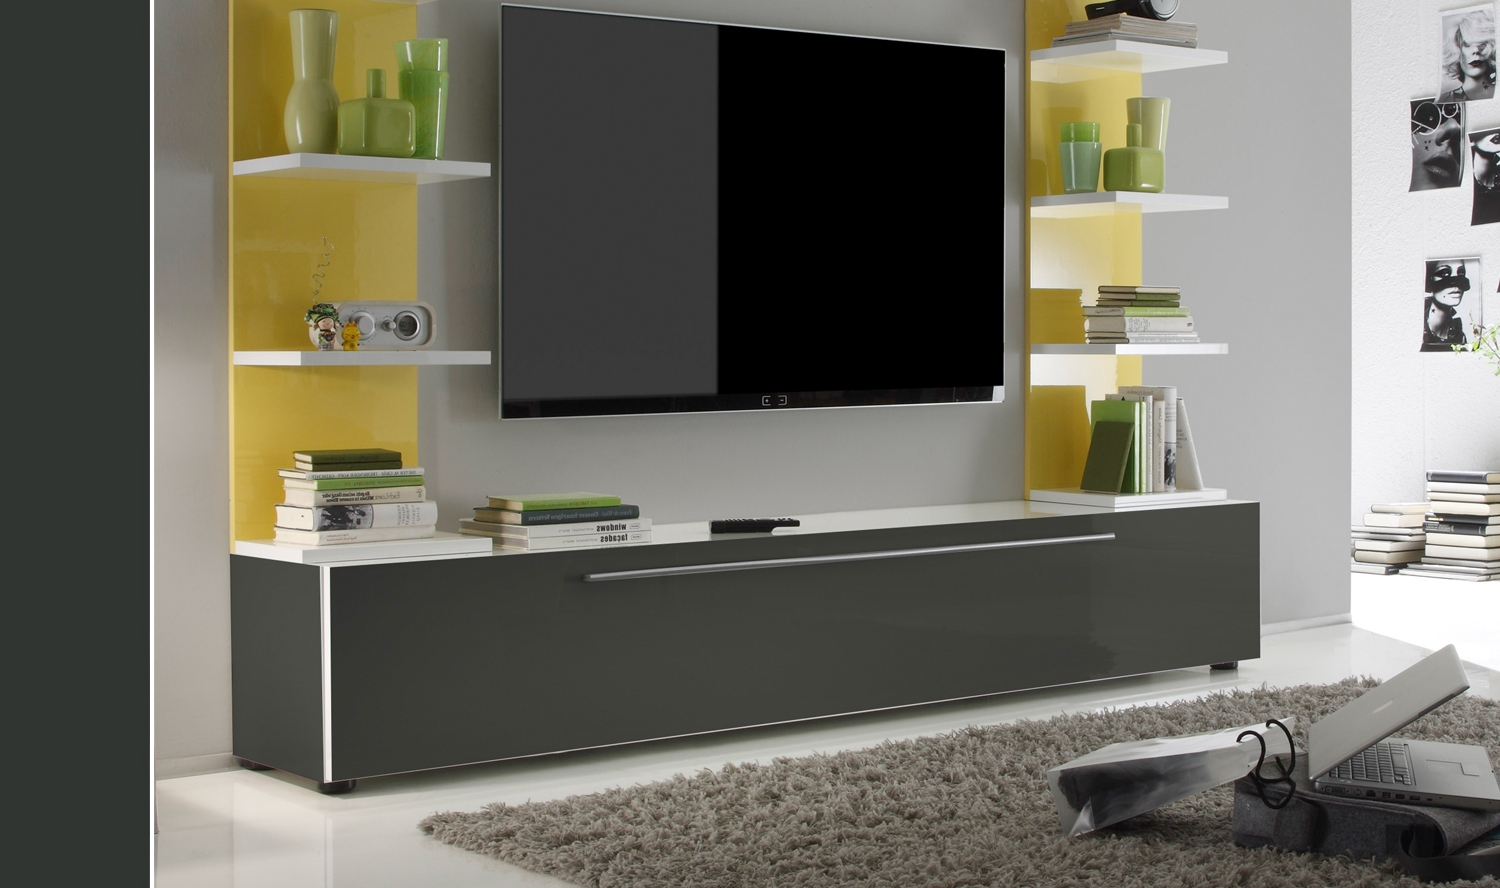 1MM International Laminate Design For TV Unit - Sundek International